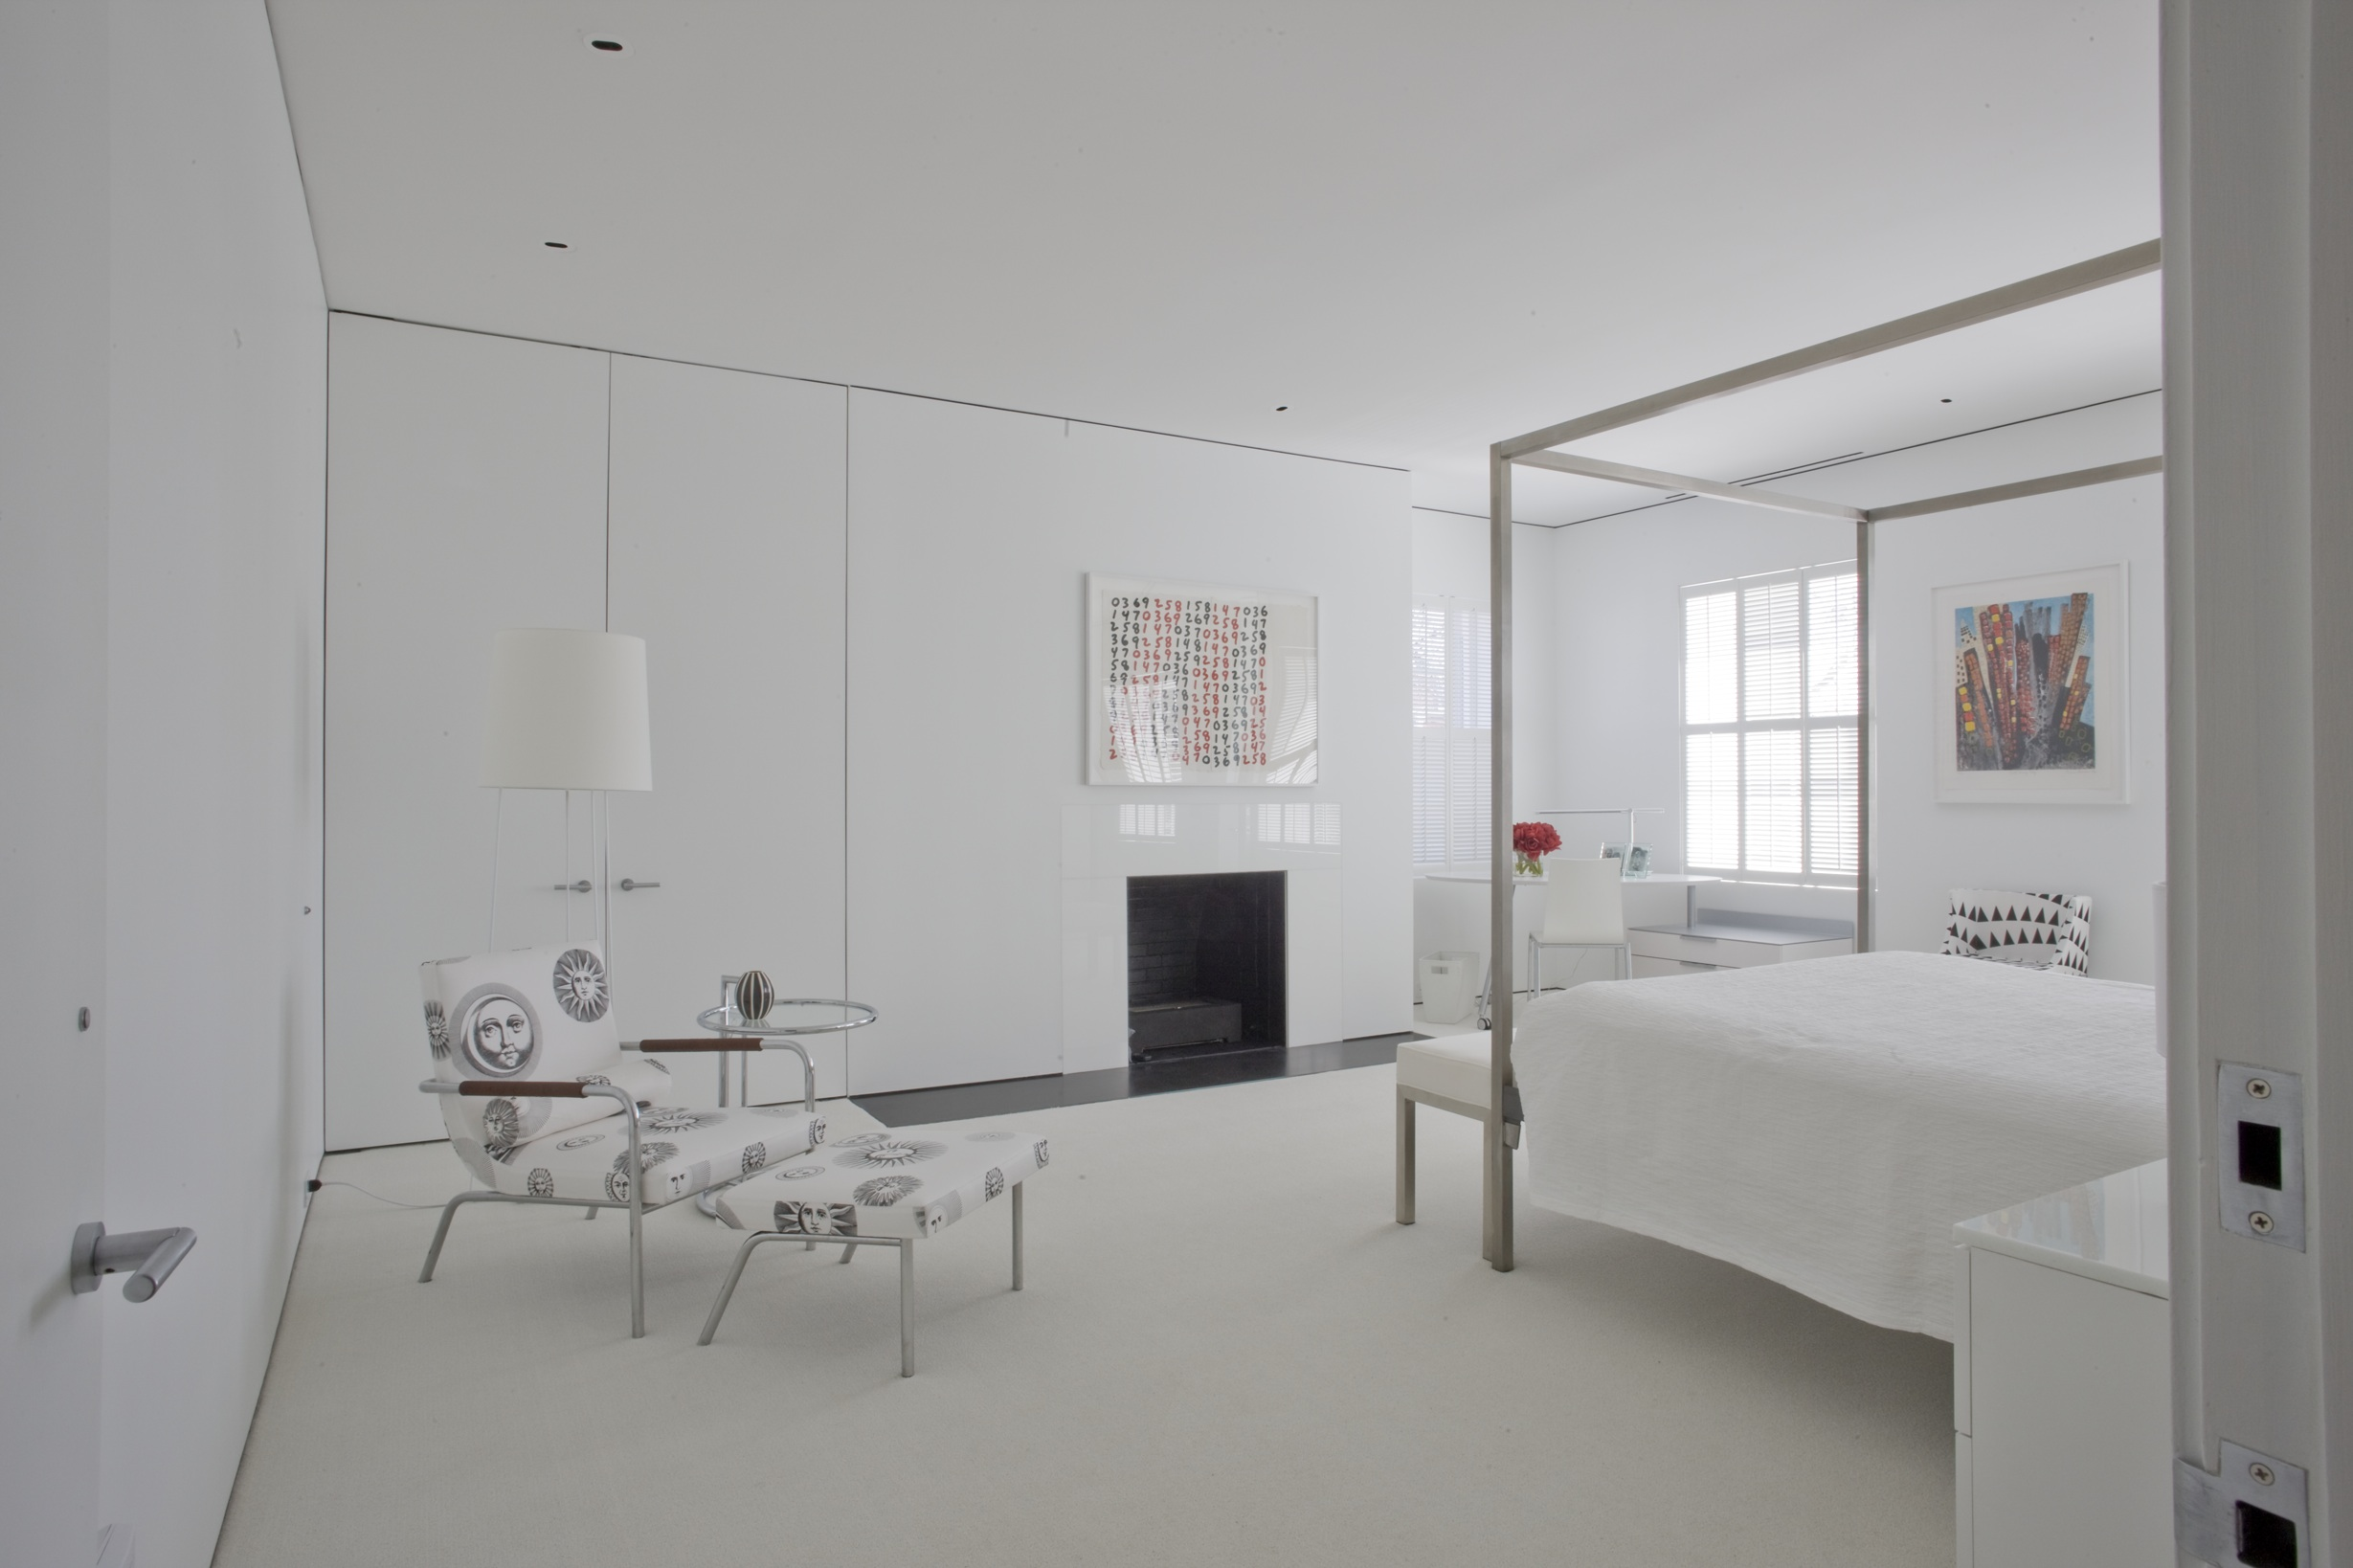 A minimal fireplace for a guest room.